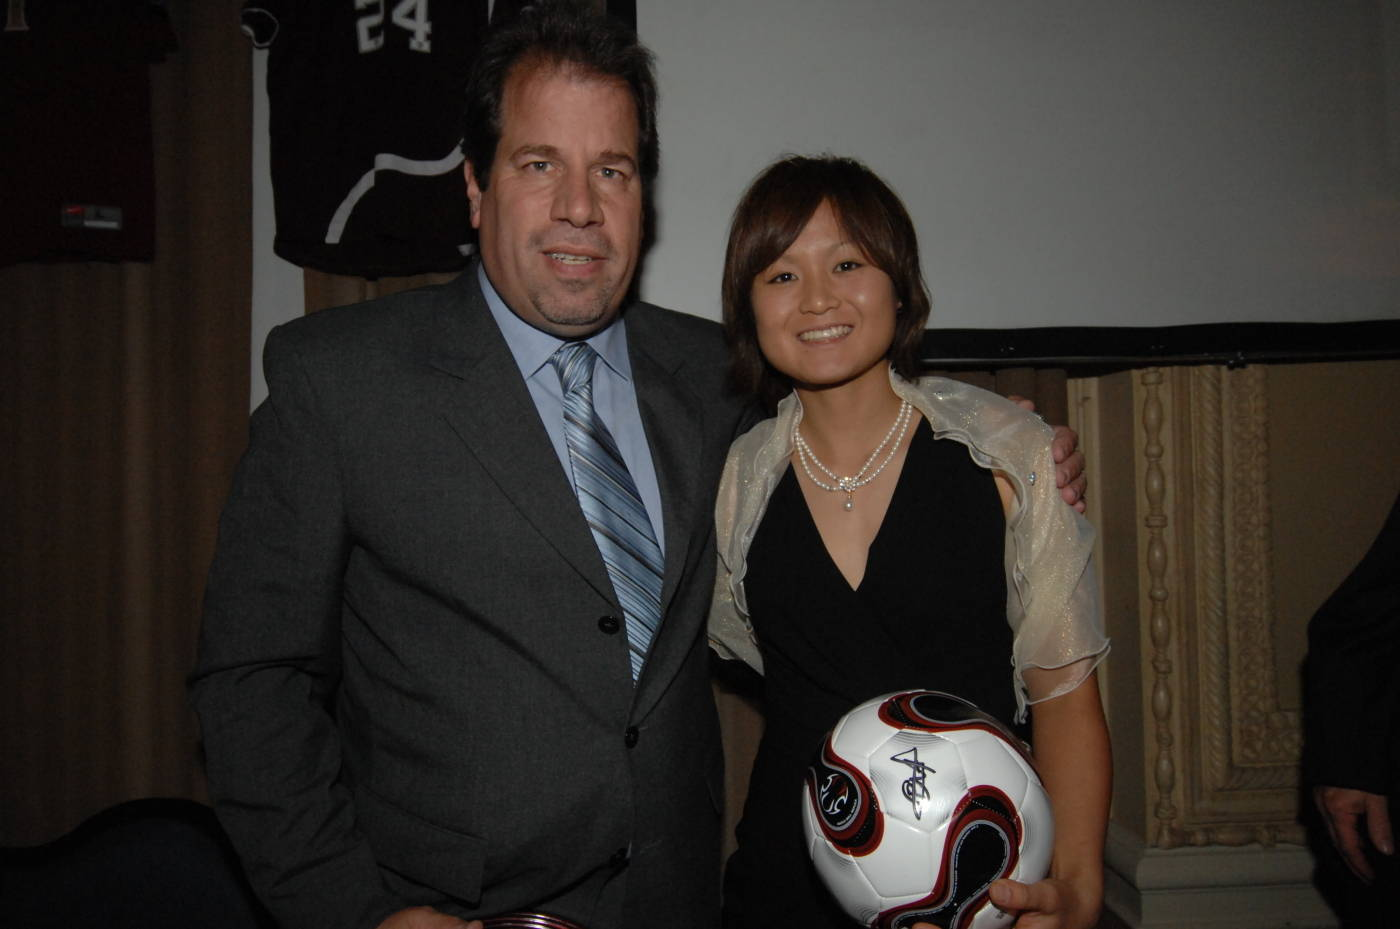 Mami Yamaguchi and head coach Mark Krikorian at the Hermann Trophy banquet.